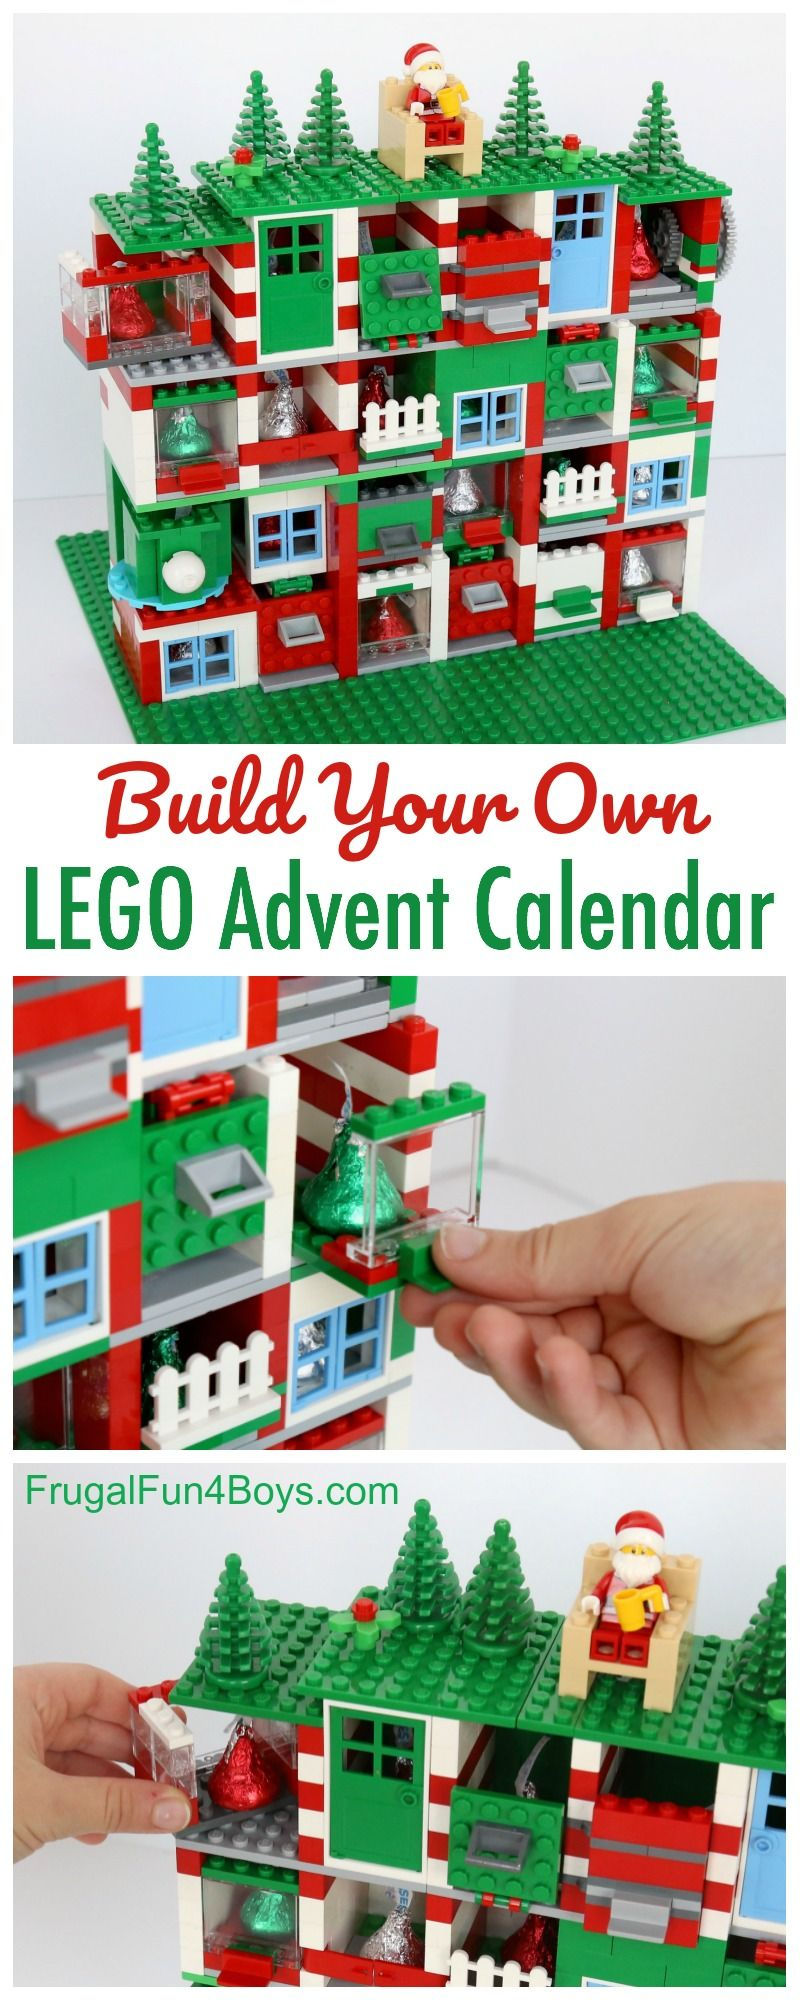 How To Build An Awesome Lego Advent Calendar With Doors And Candy